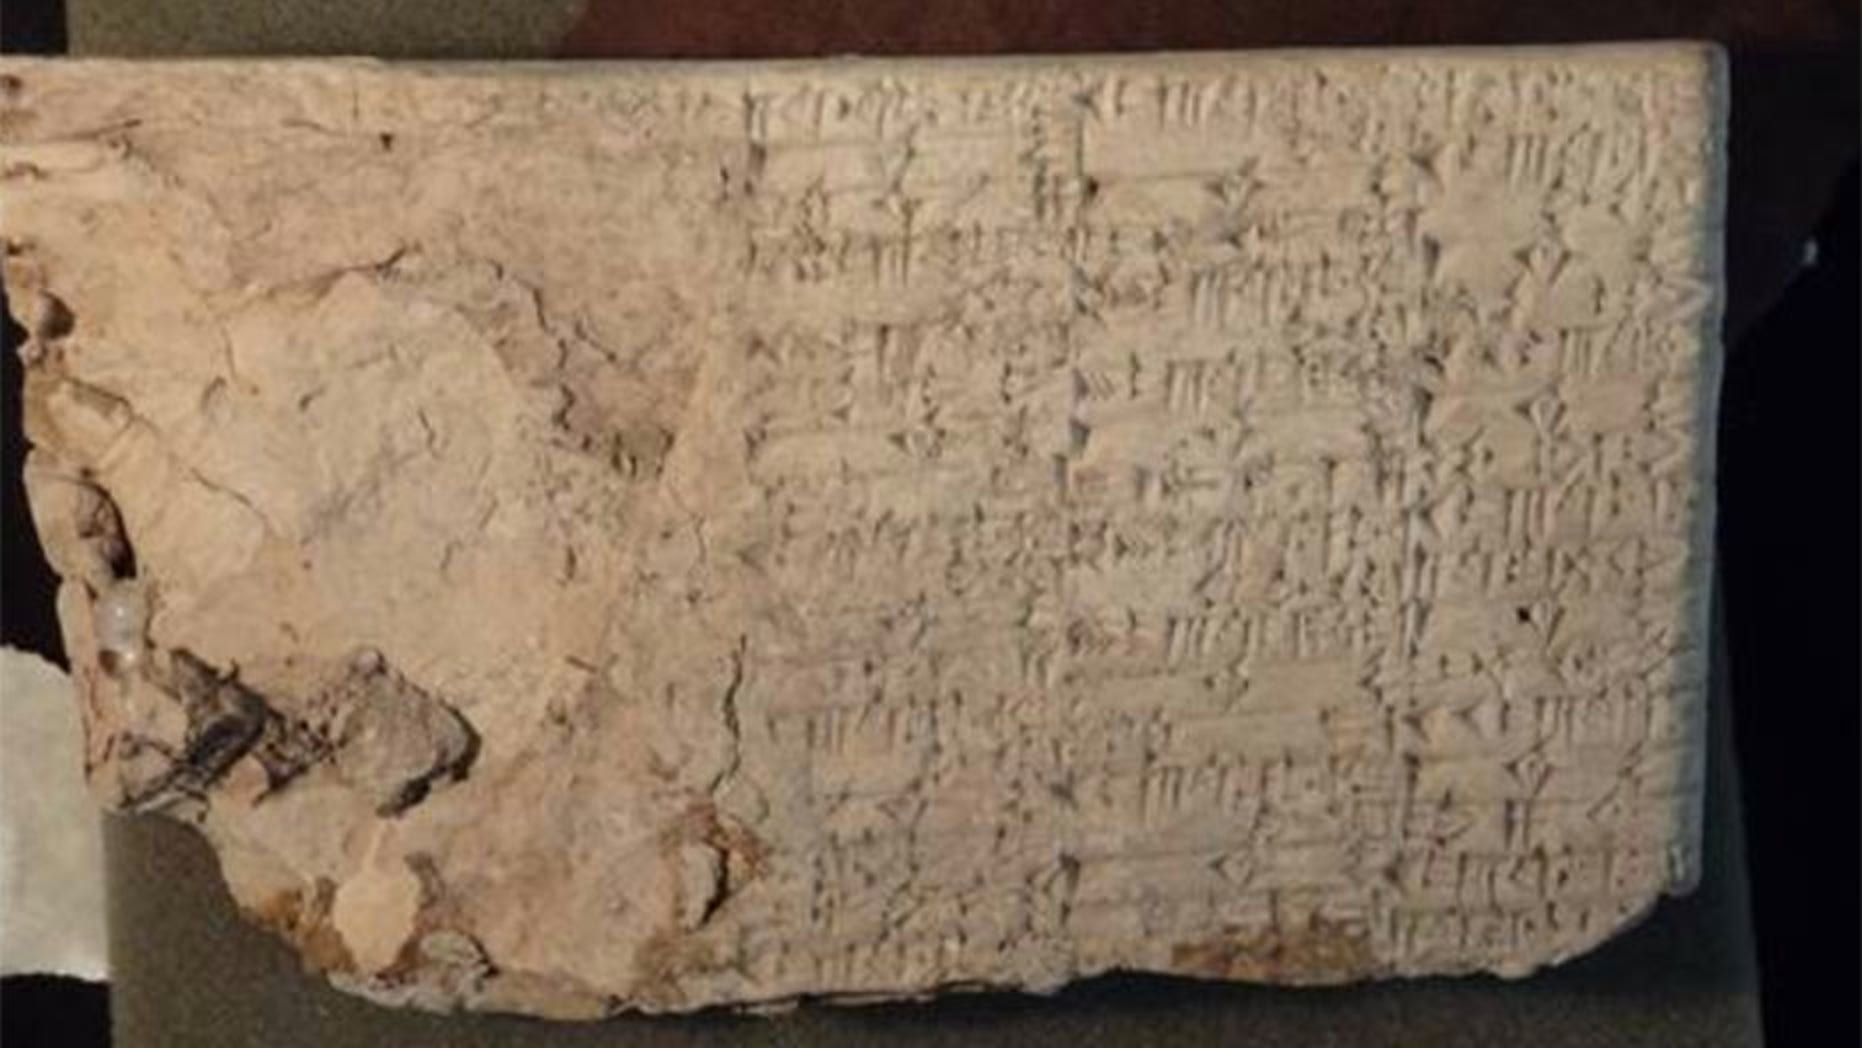 Cuneiform tablets smuggled into the U.S. by Hobby Lobby.